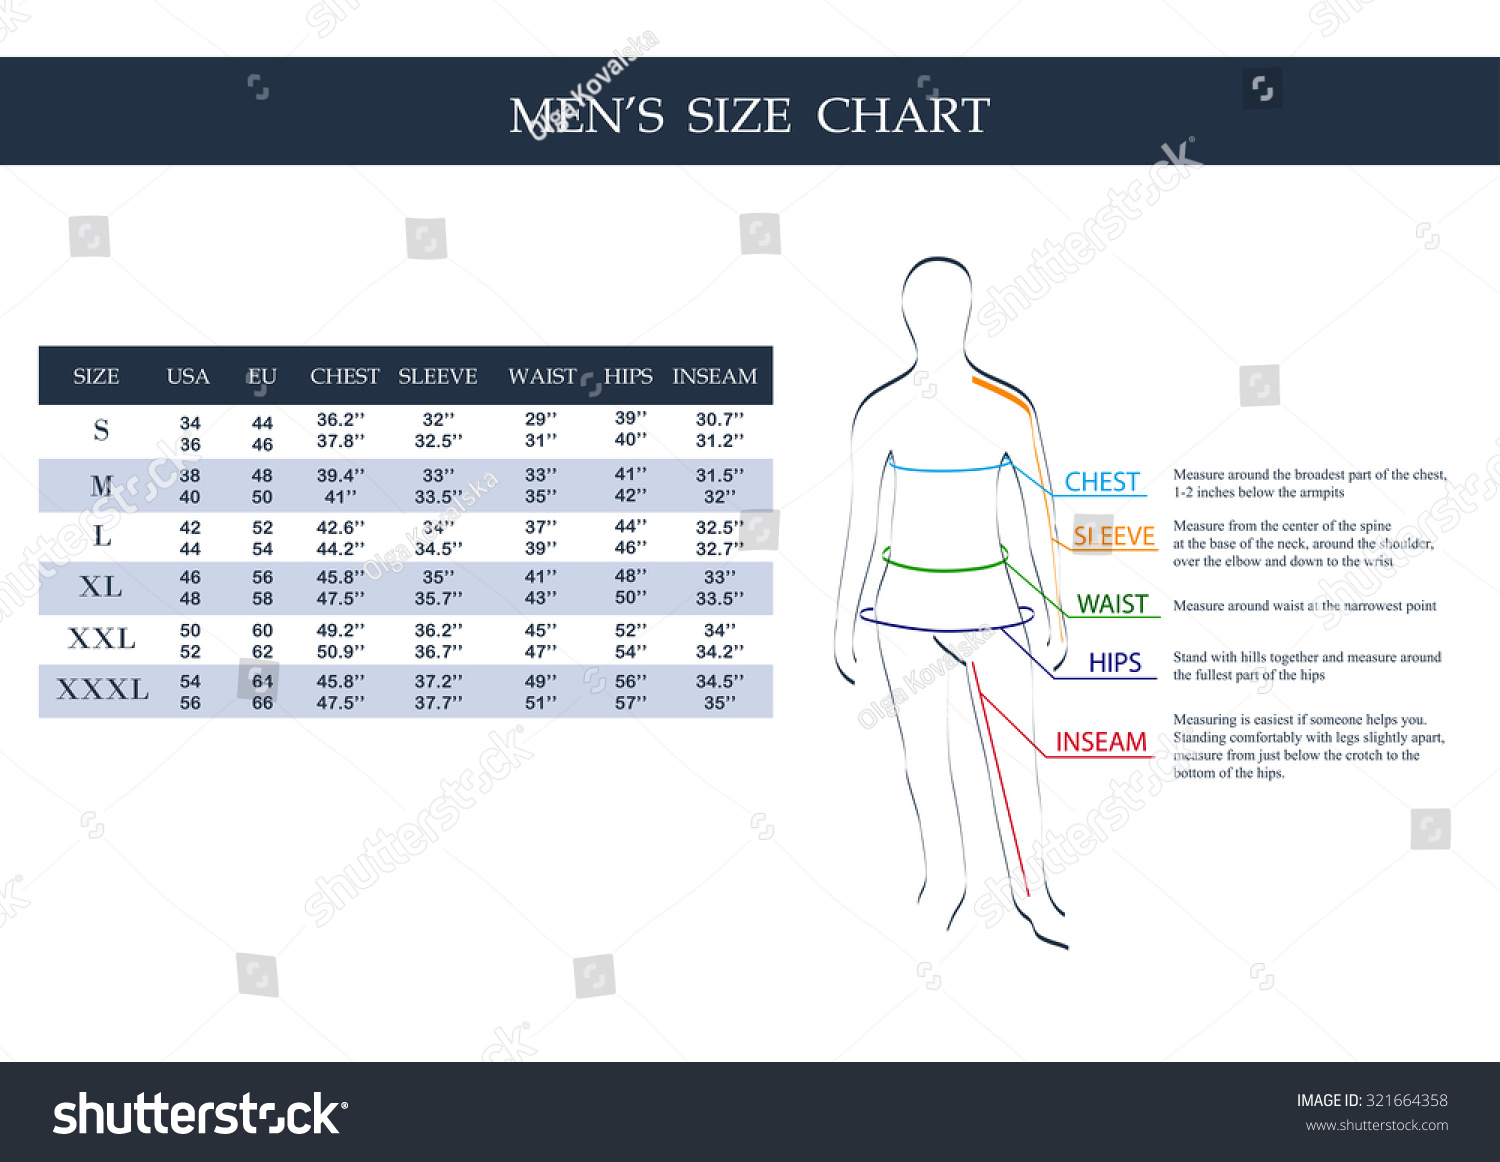 a8a4acec49860 size chart for men   measurements for clothing   male models template with  international and confection